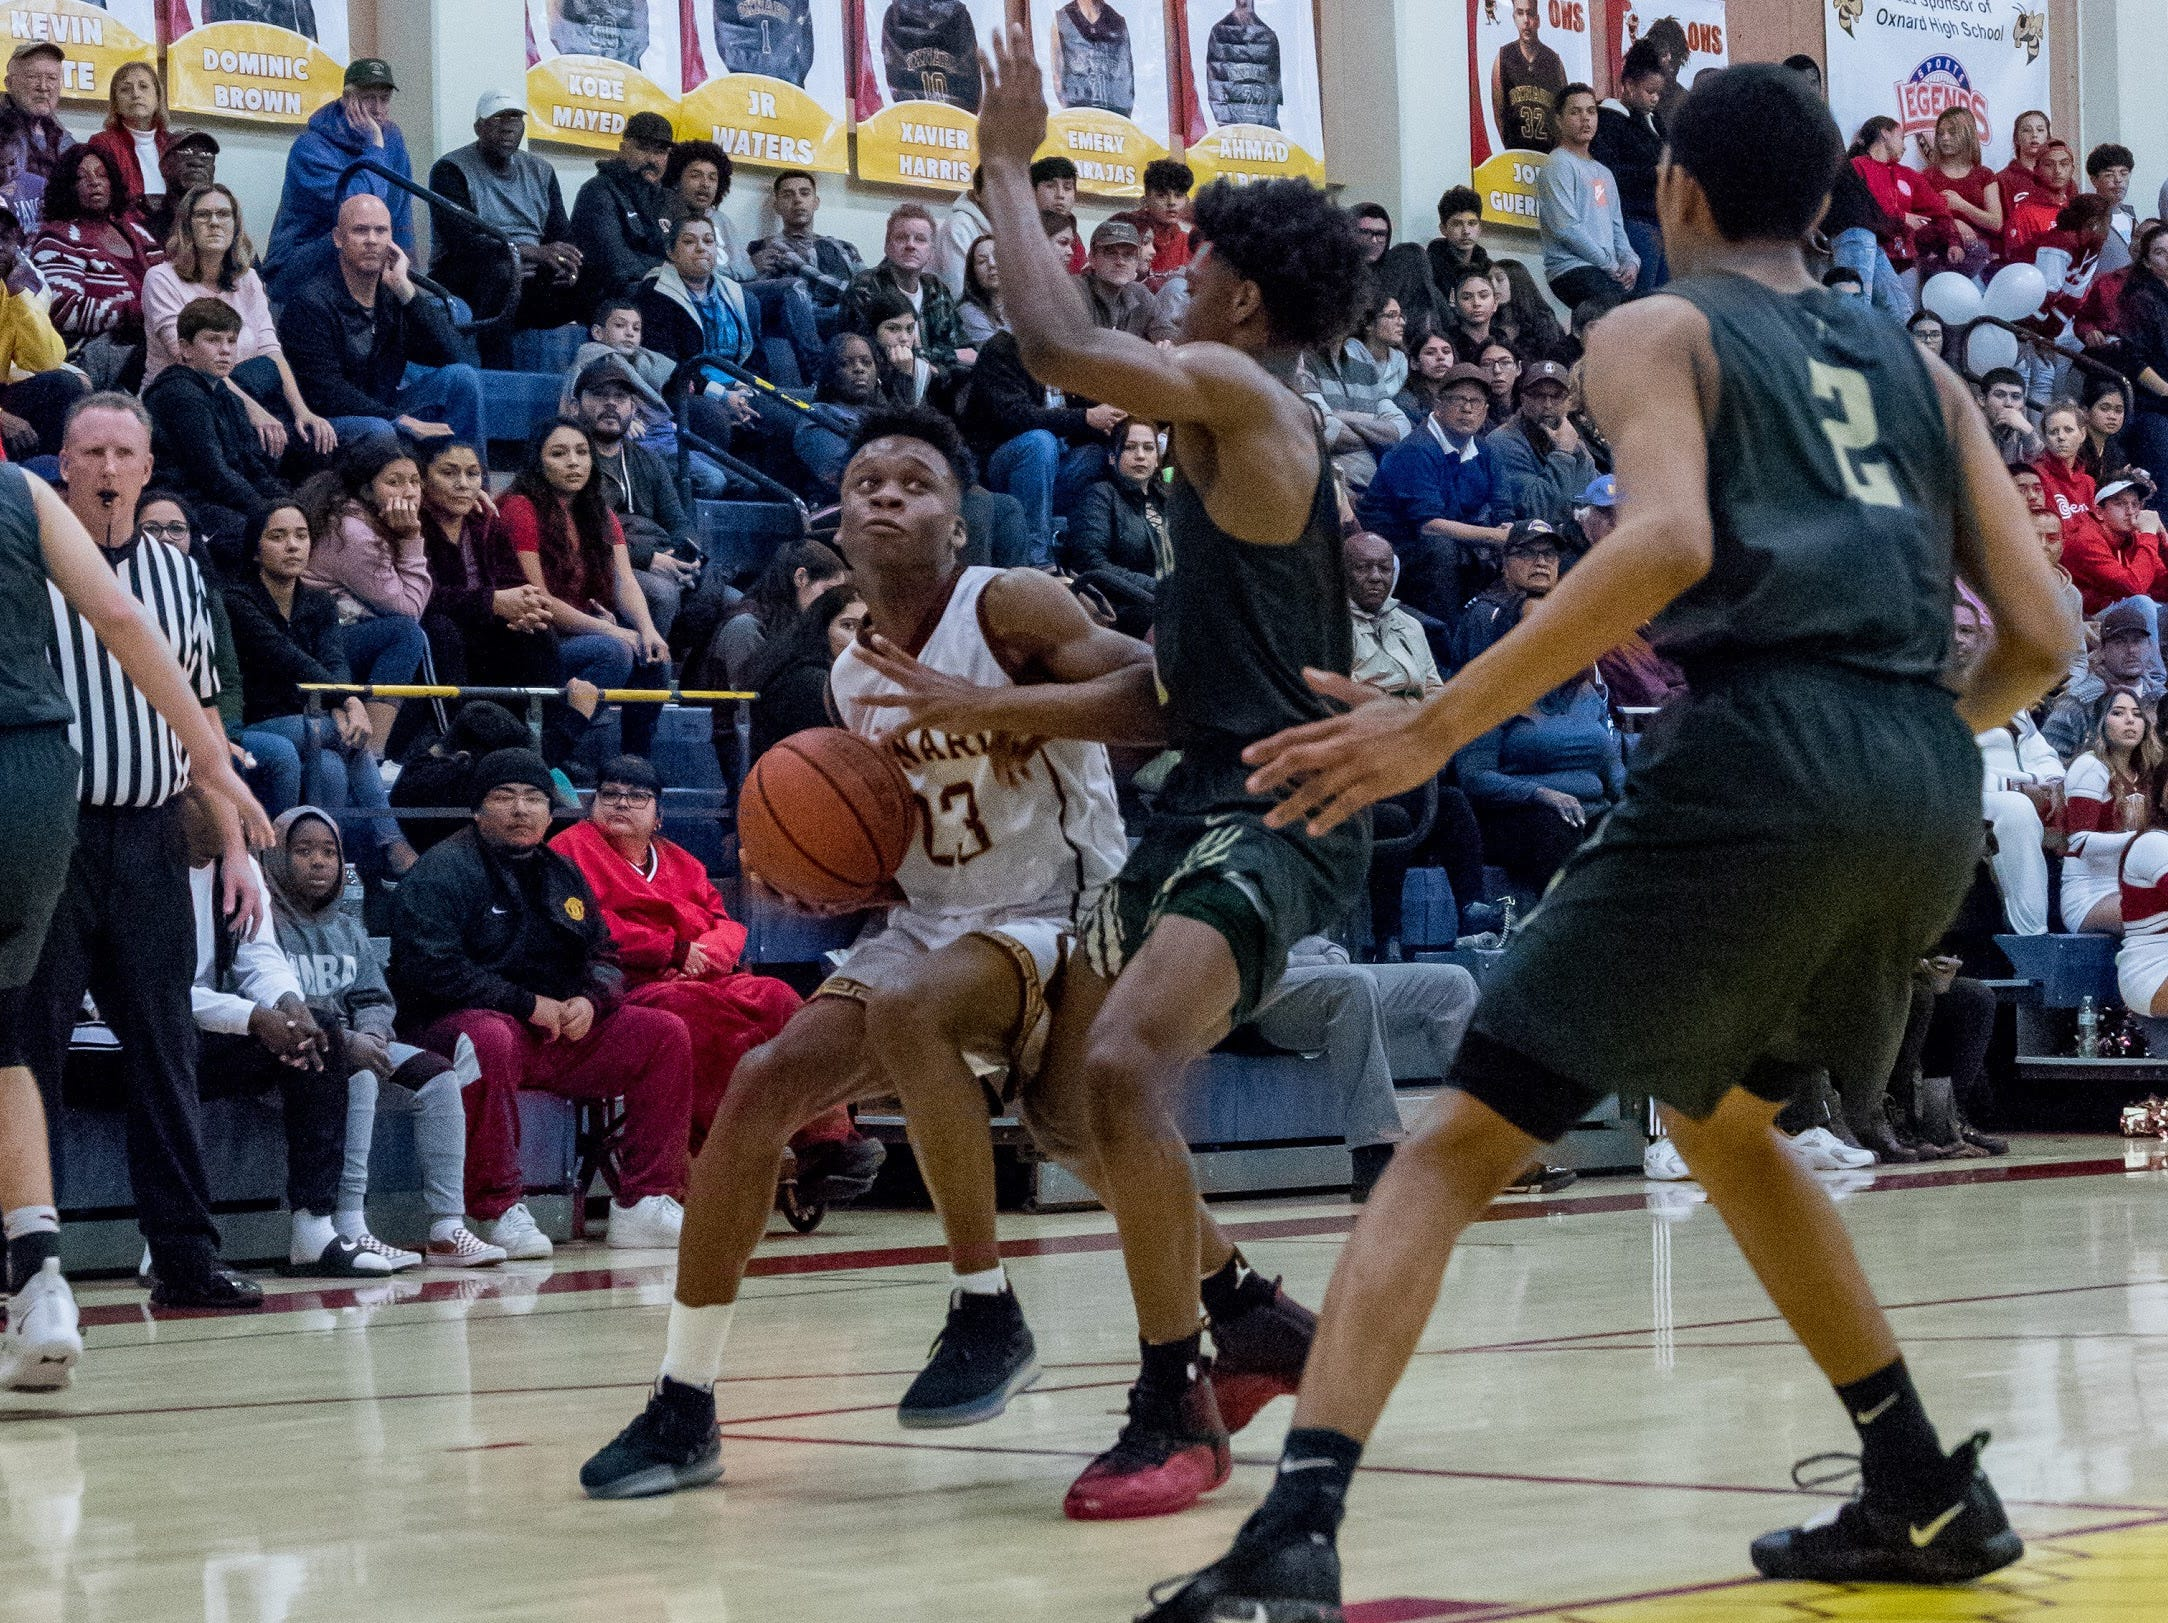 Oxnard's Stacy Johnson looks for room around St. Francis defenders during the Yellowjackets' 61-49 win in a Division 3AA quarterfinal Thursday night.